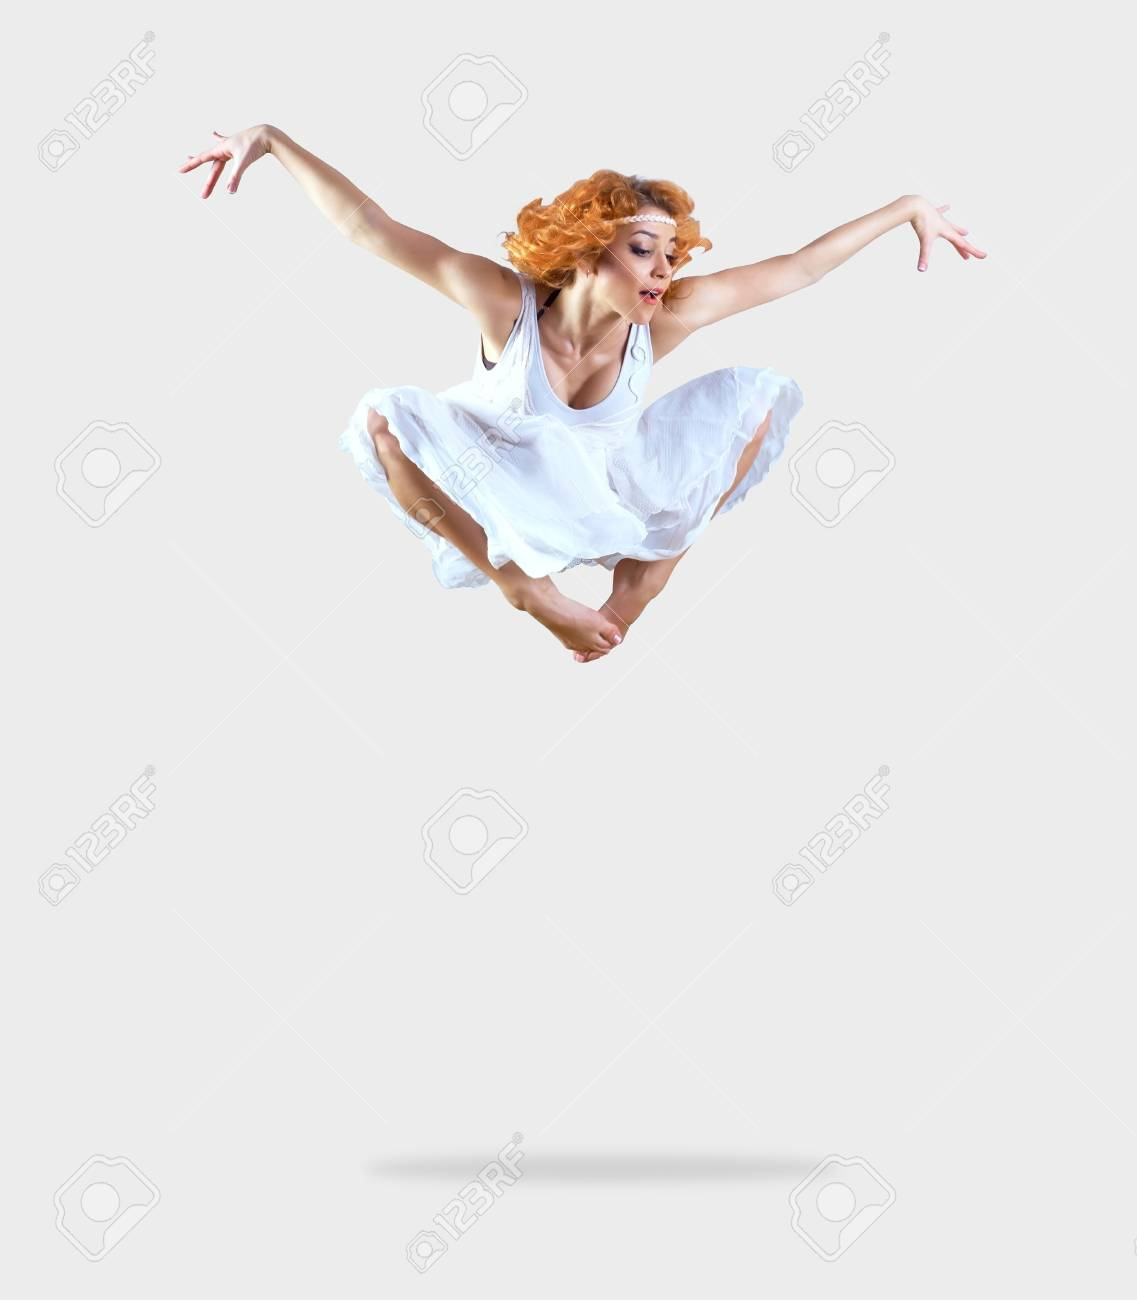 Woman dancer jump posing on background Stock Photo - 13484474